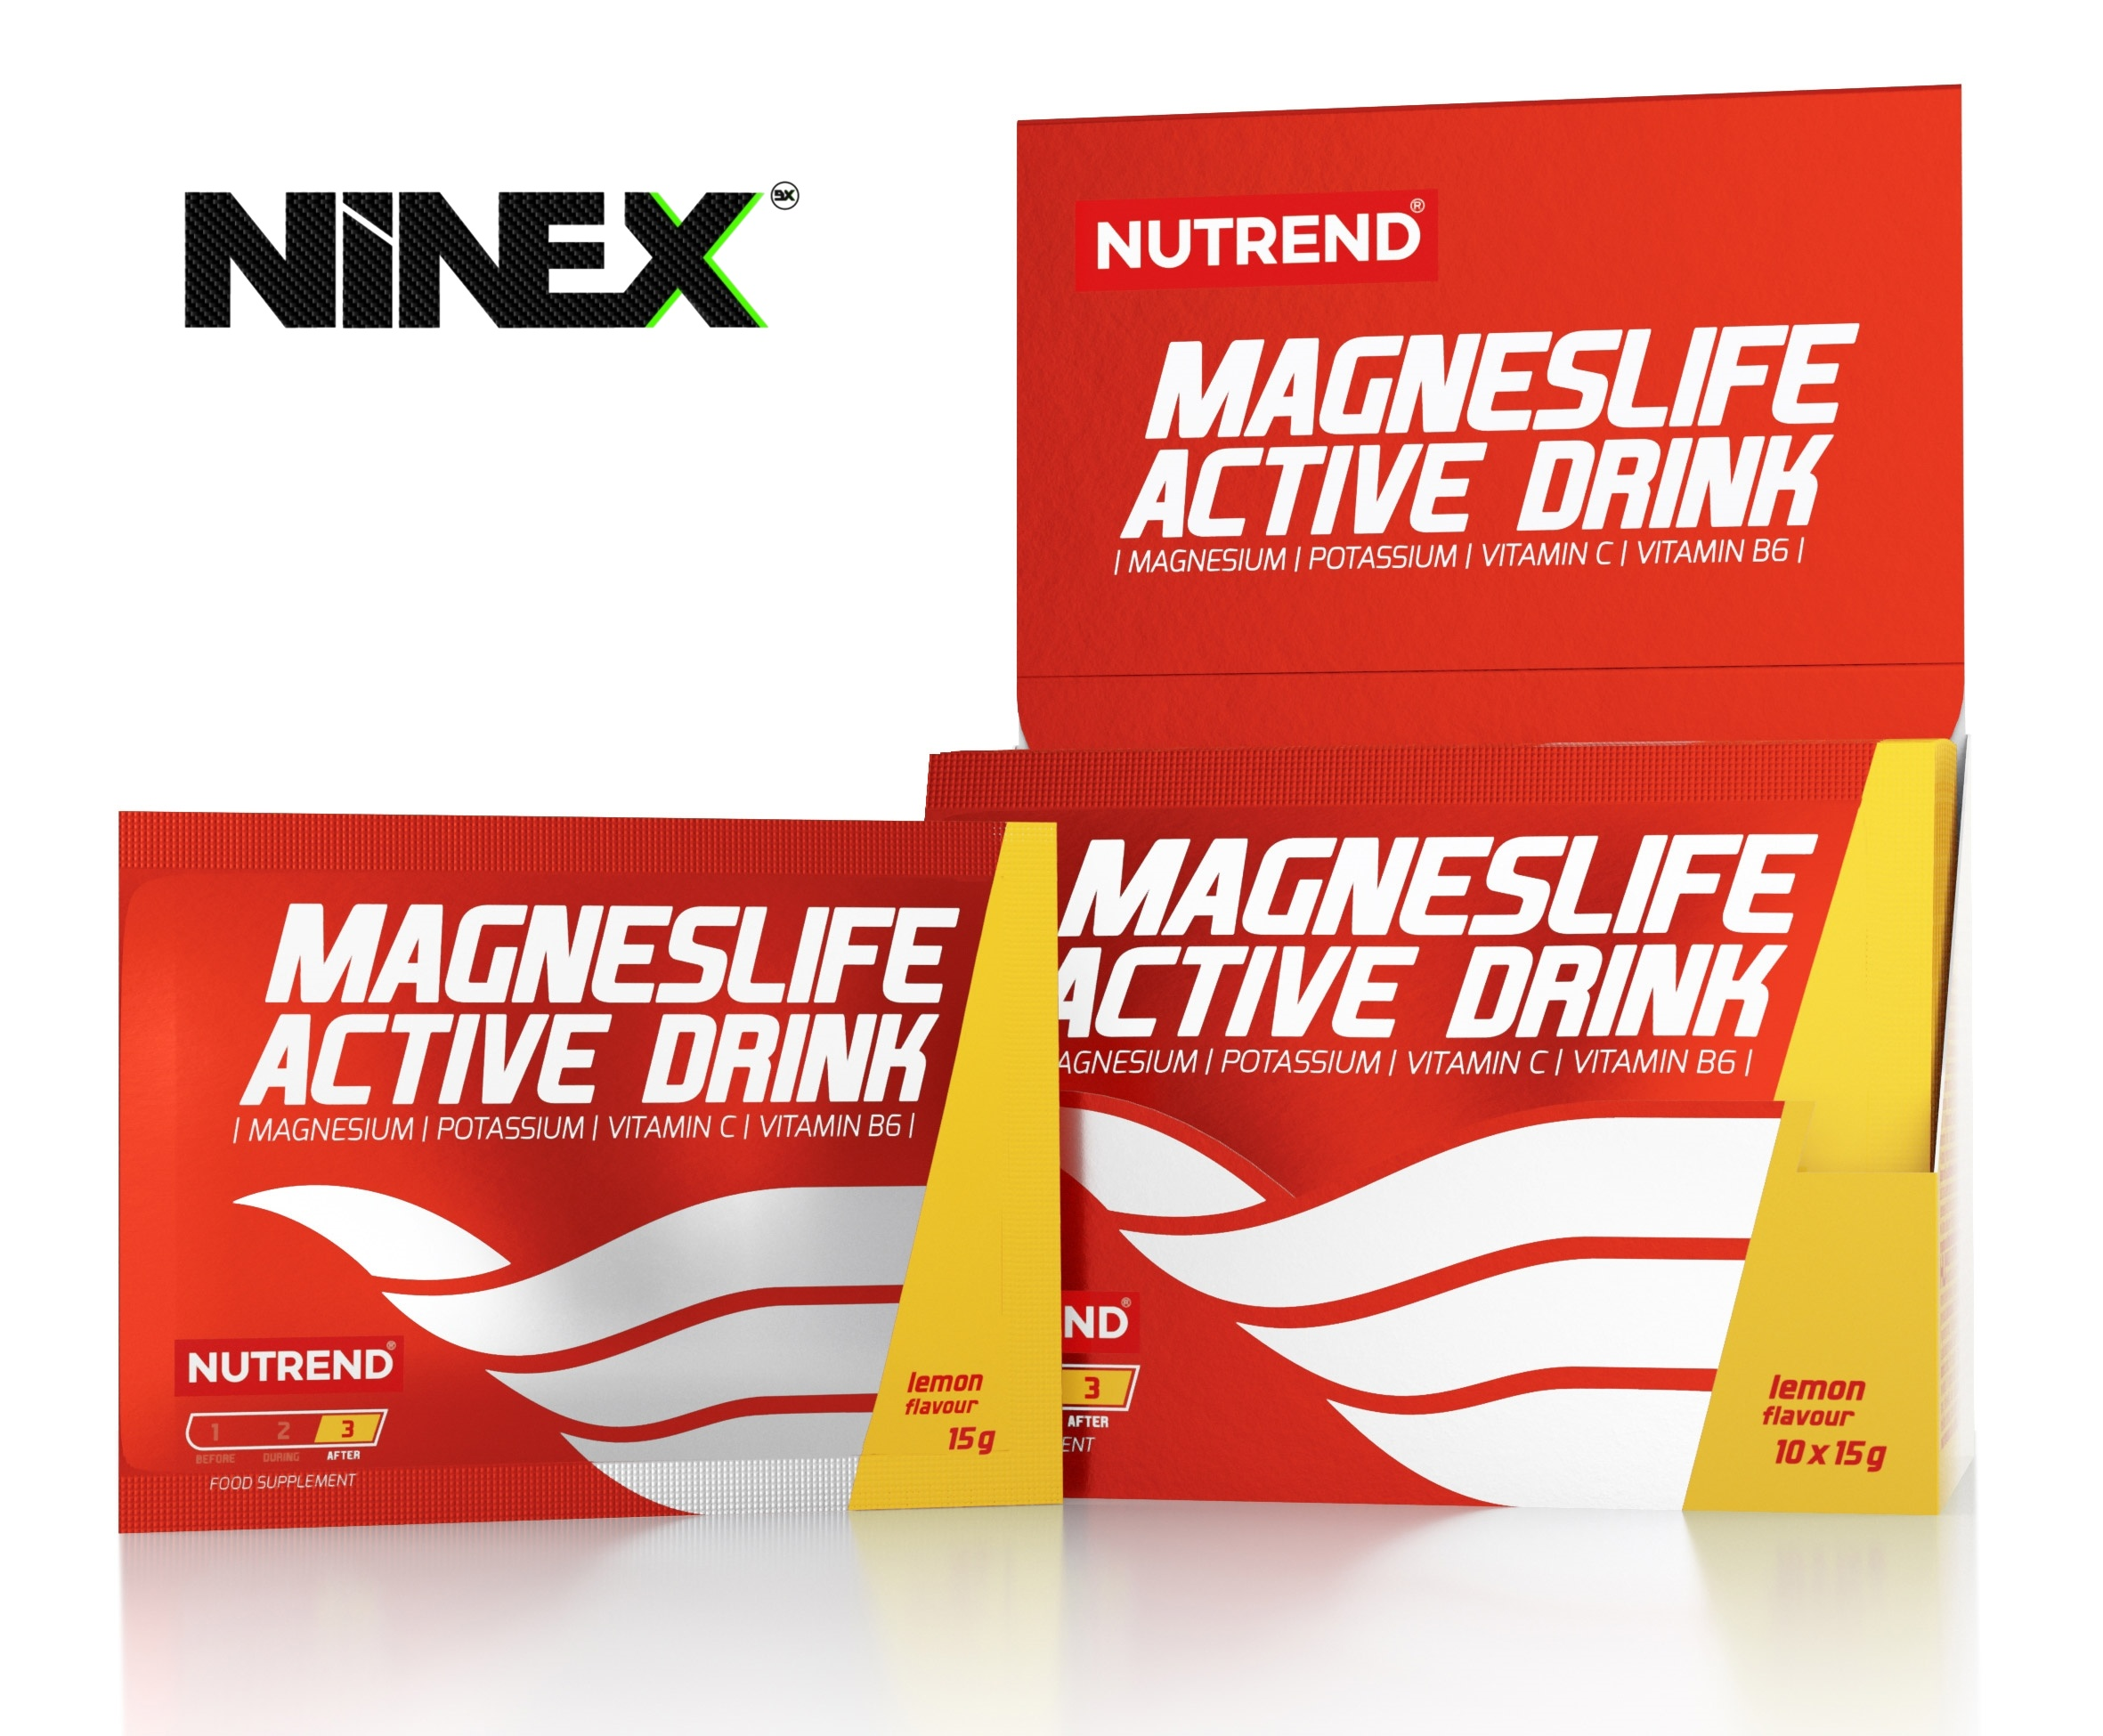 NOVINKA! MAGNESLIFE ACTIVE DRINK